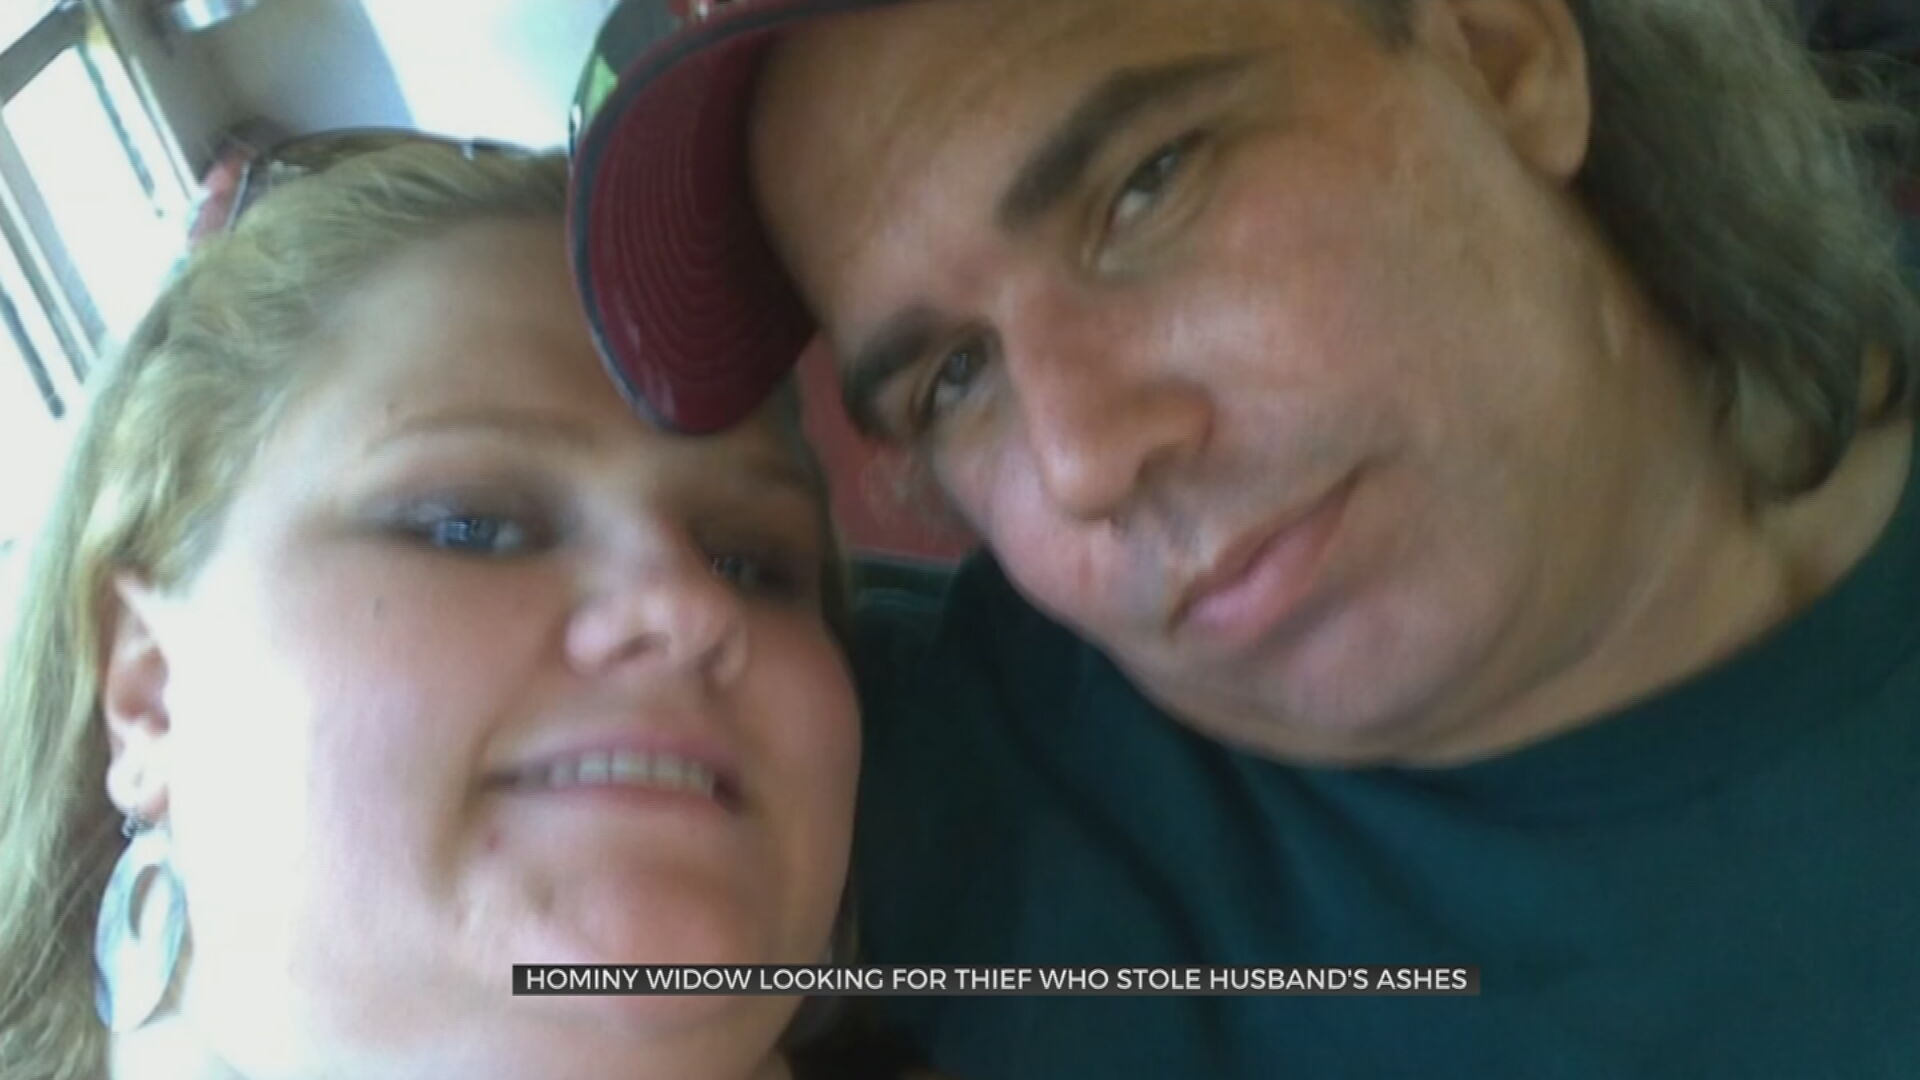 Hominy Widow Heartbroken, Searching For Thief Who Stole Husband's Ashes